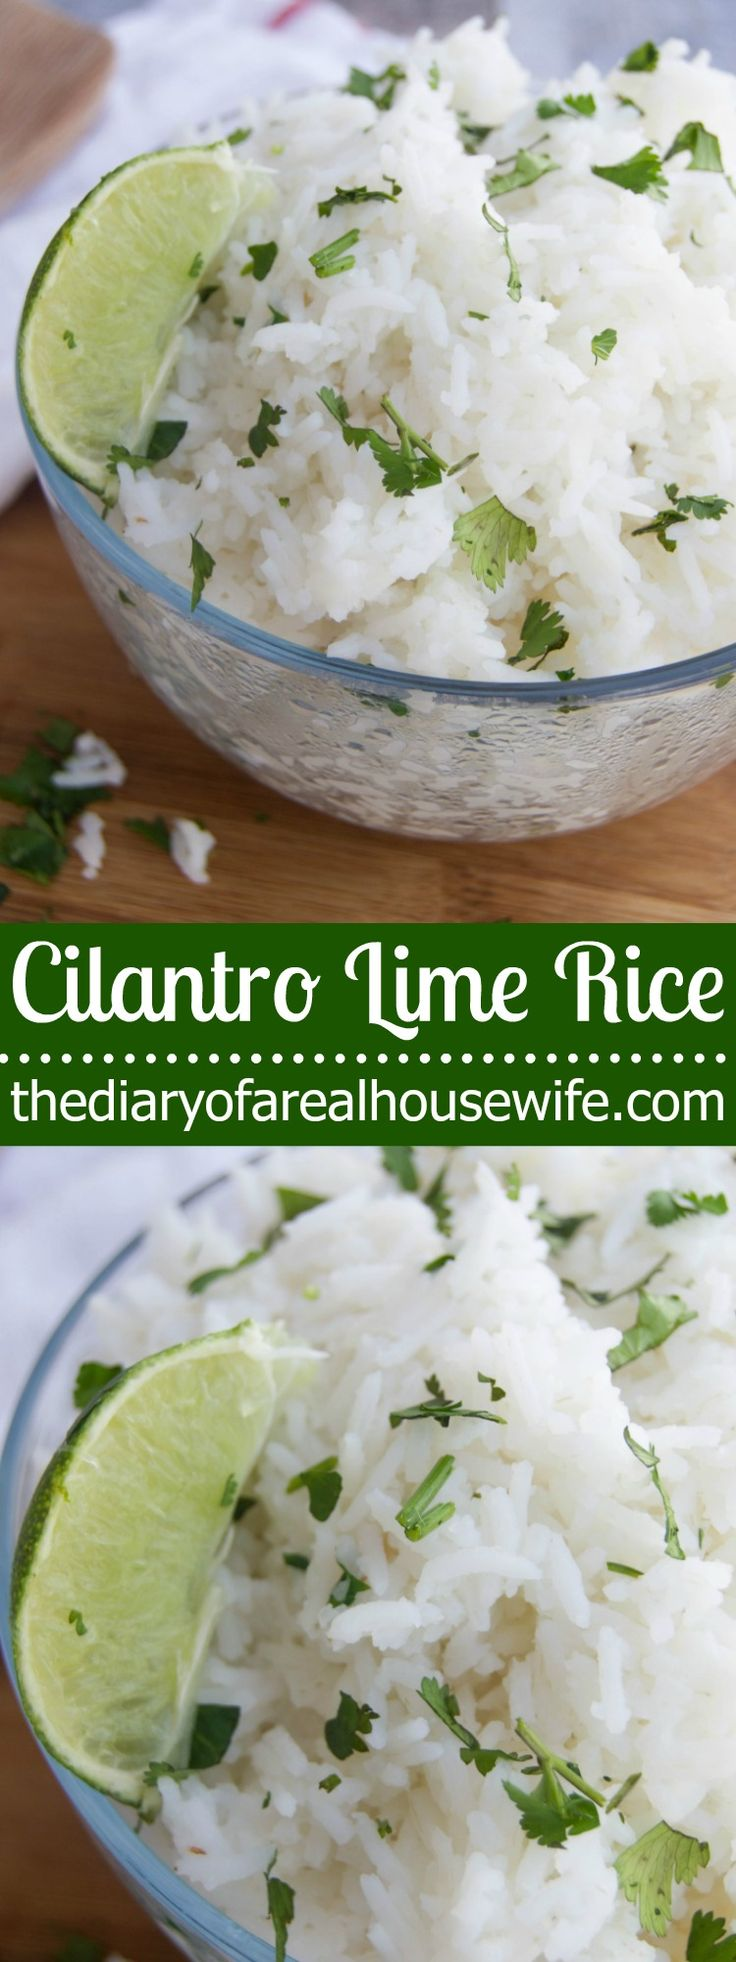 Cilantro Lime Rice. The best recipe! I make this for every taco night.